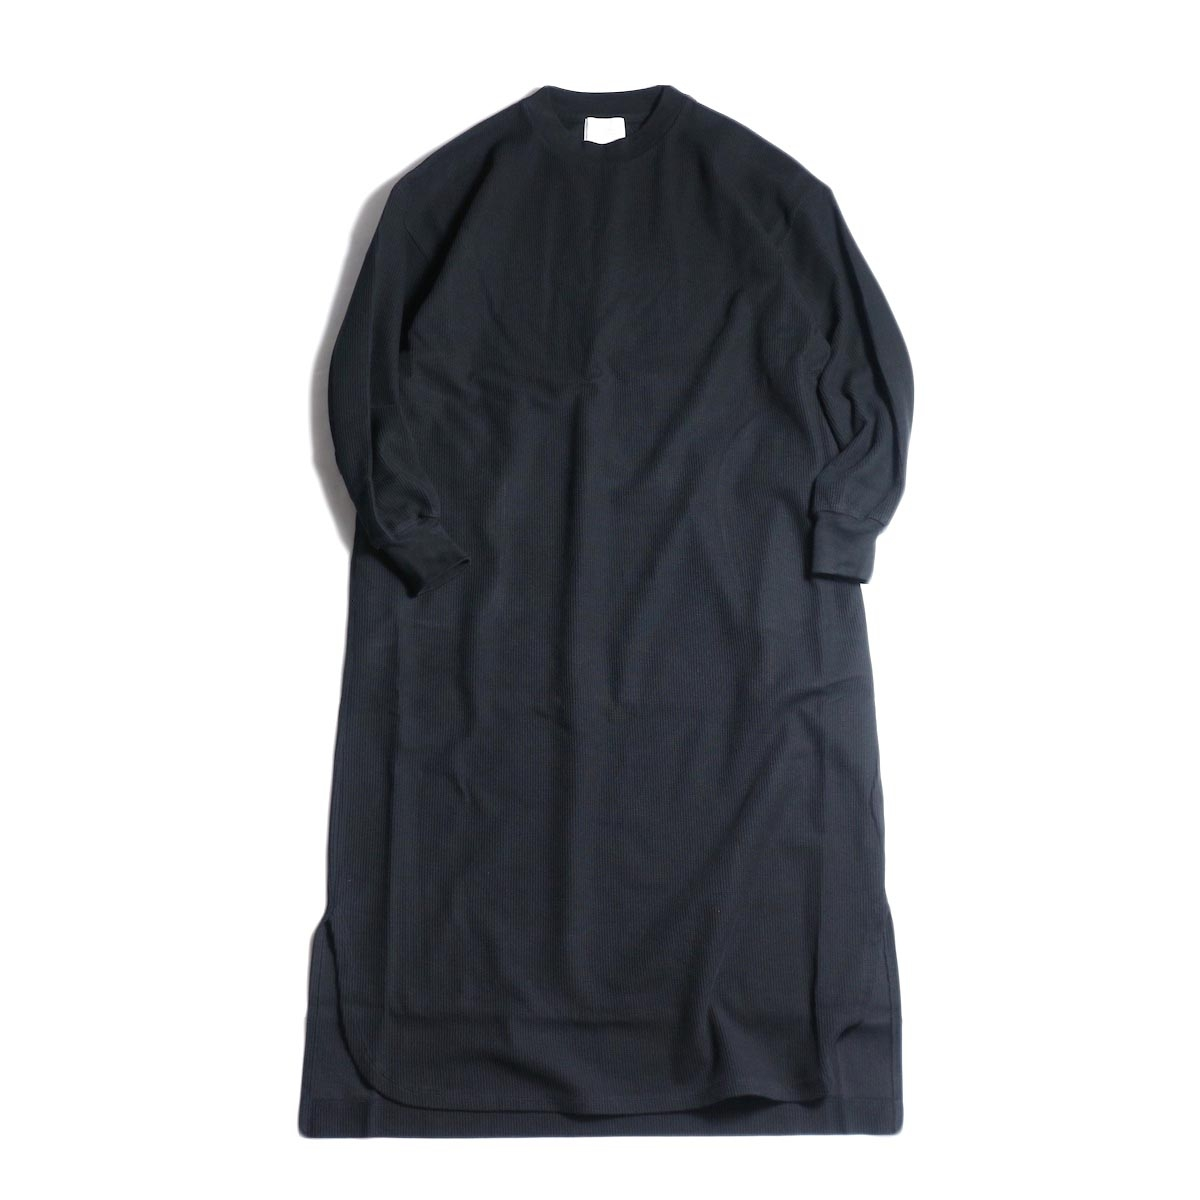 blurhms / Rough&Smooth Thermal One Piece (Black)